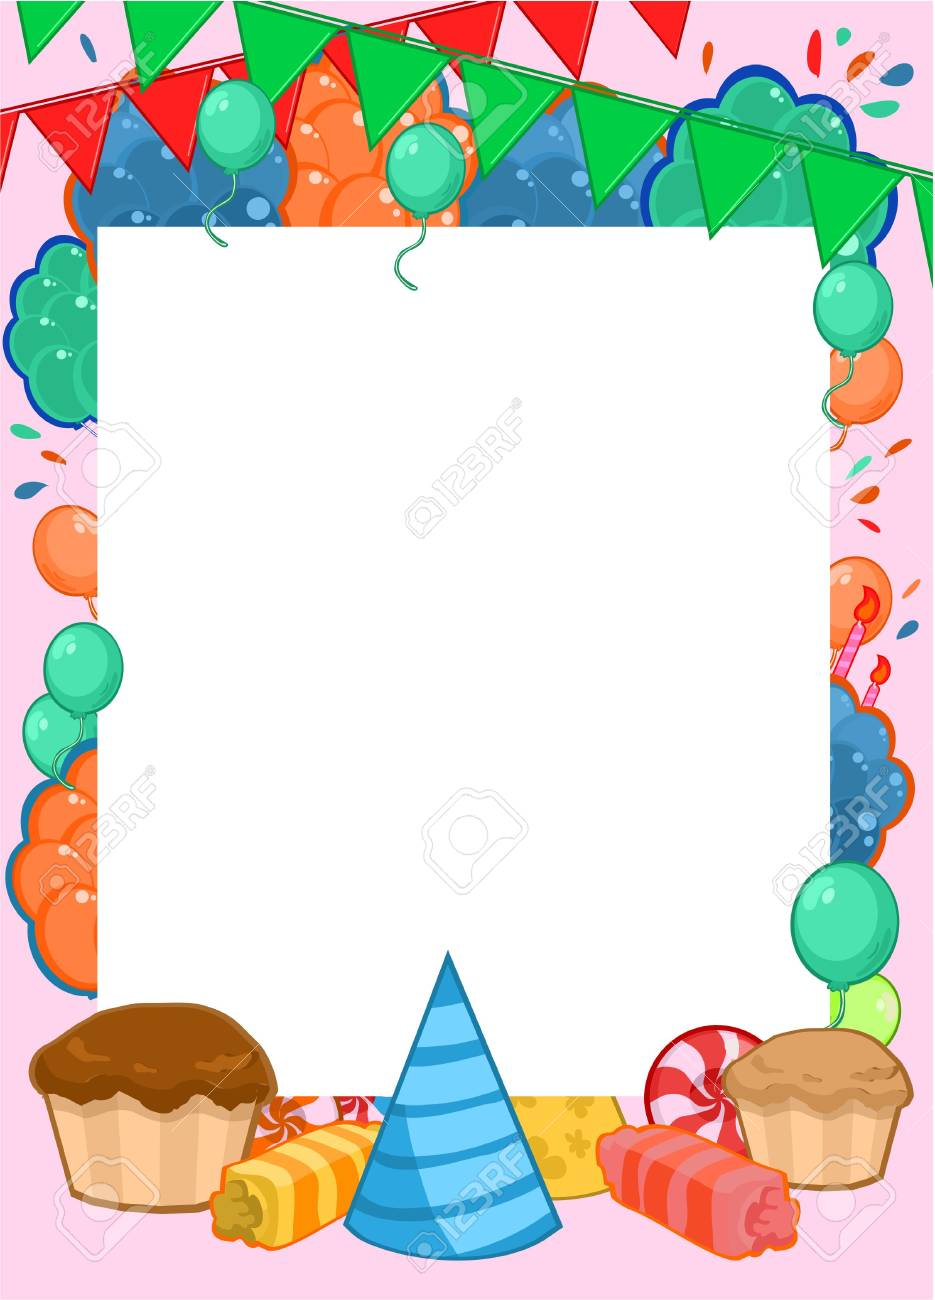 Happy birthday invitation bright template with frame for text happy birthday invitation bright template with frame for text and colorful party elements vector illustration stock stopboris Gallery